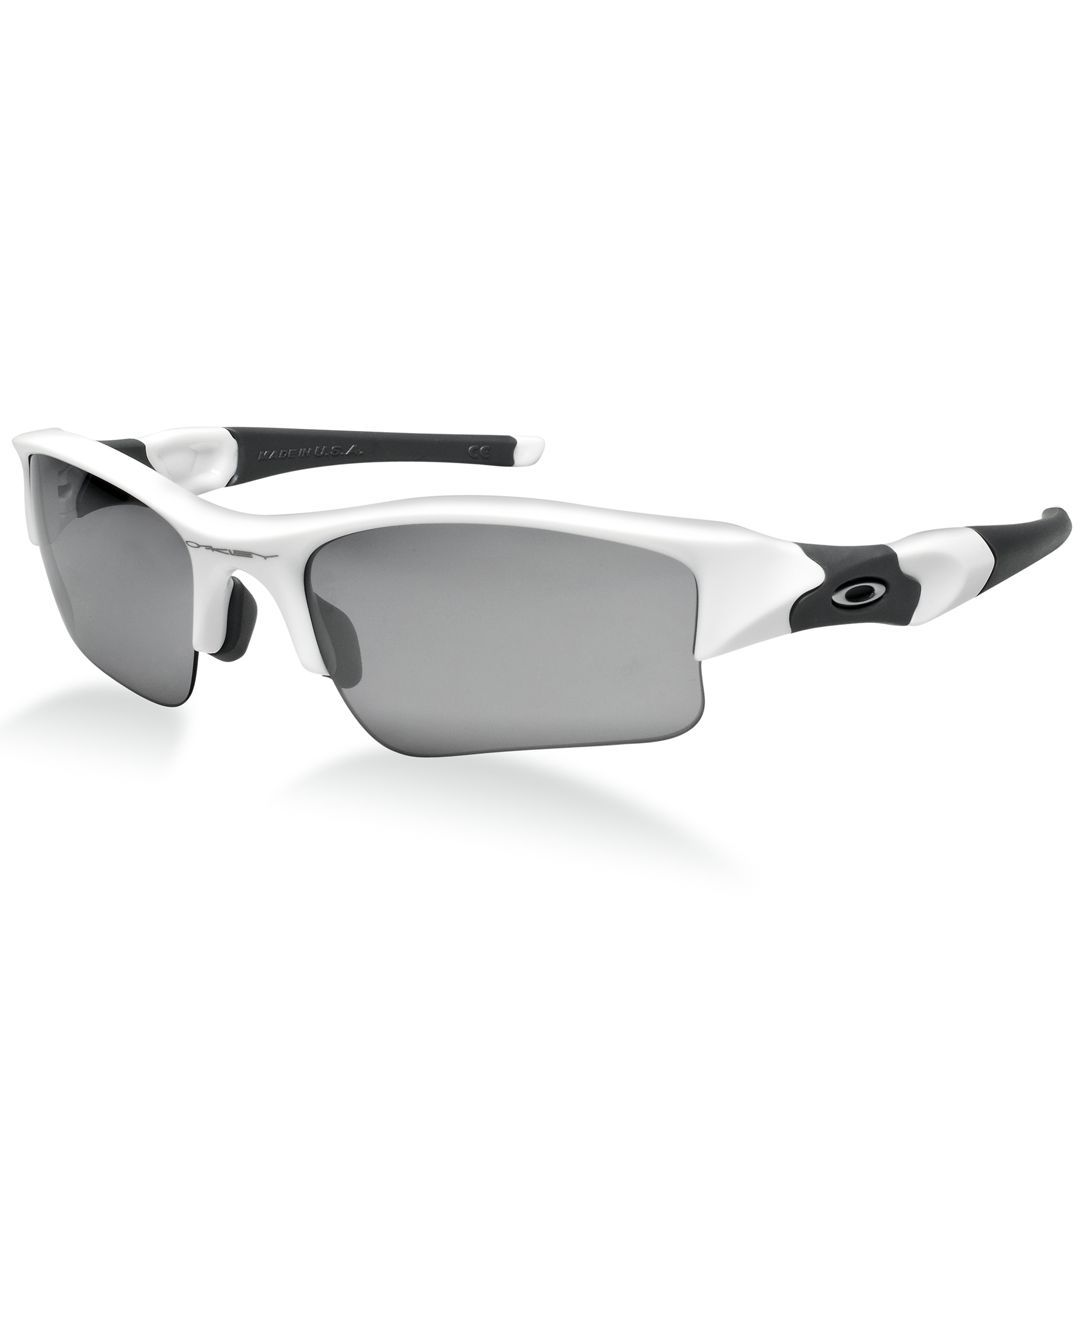 Oakley sunglasses asian fit - Oakley Sunglasses Oo9115 Asian Fit Flak Jacket Xlj